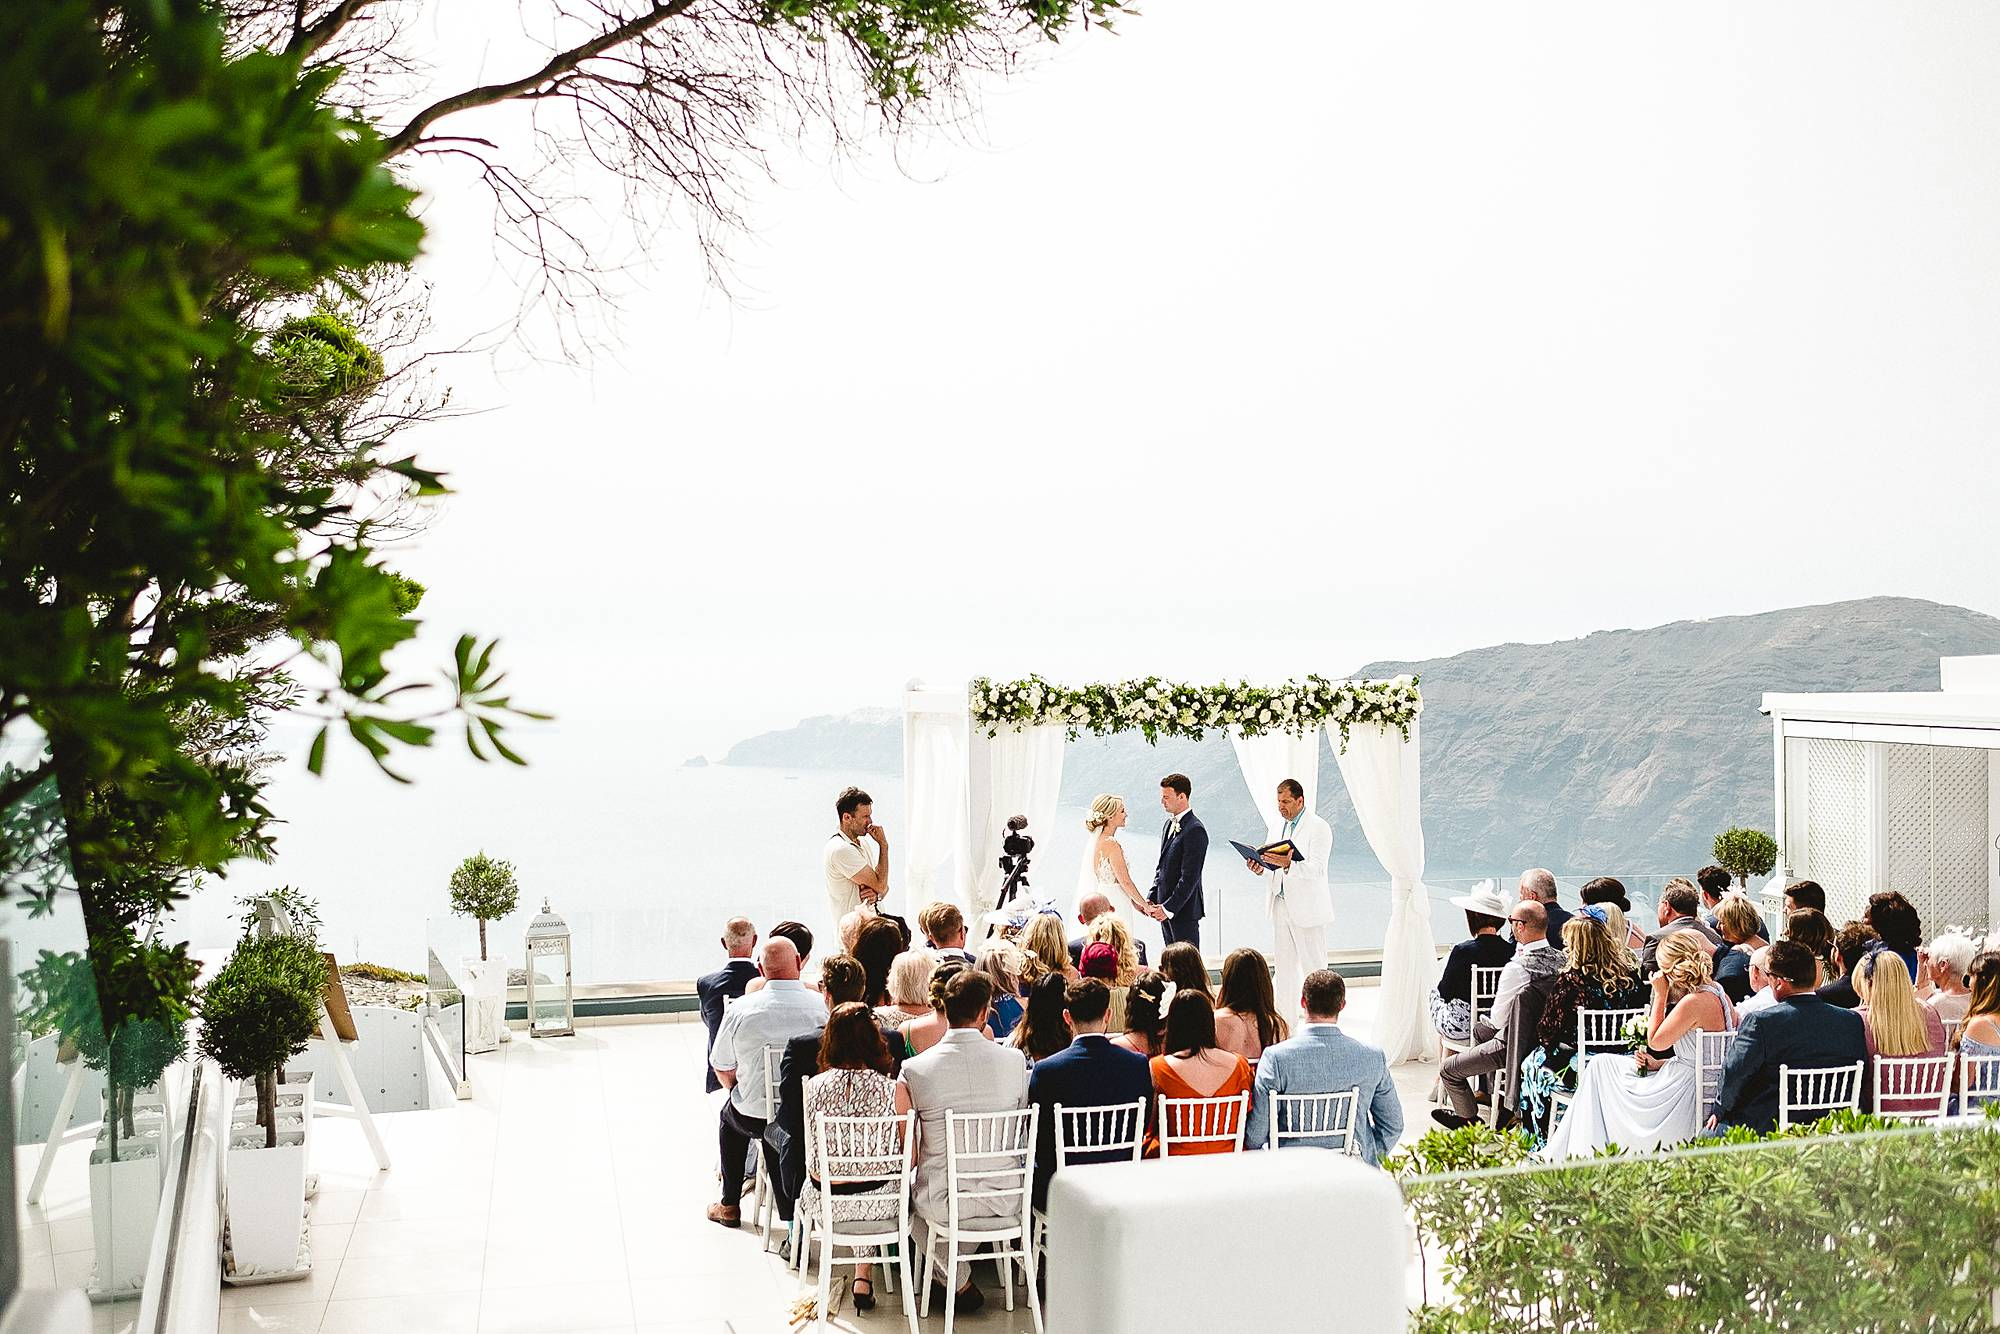 Santorini-Wedding-Photographer-70.jpg